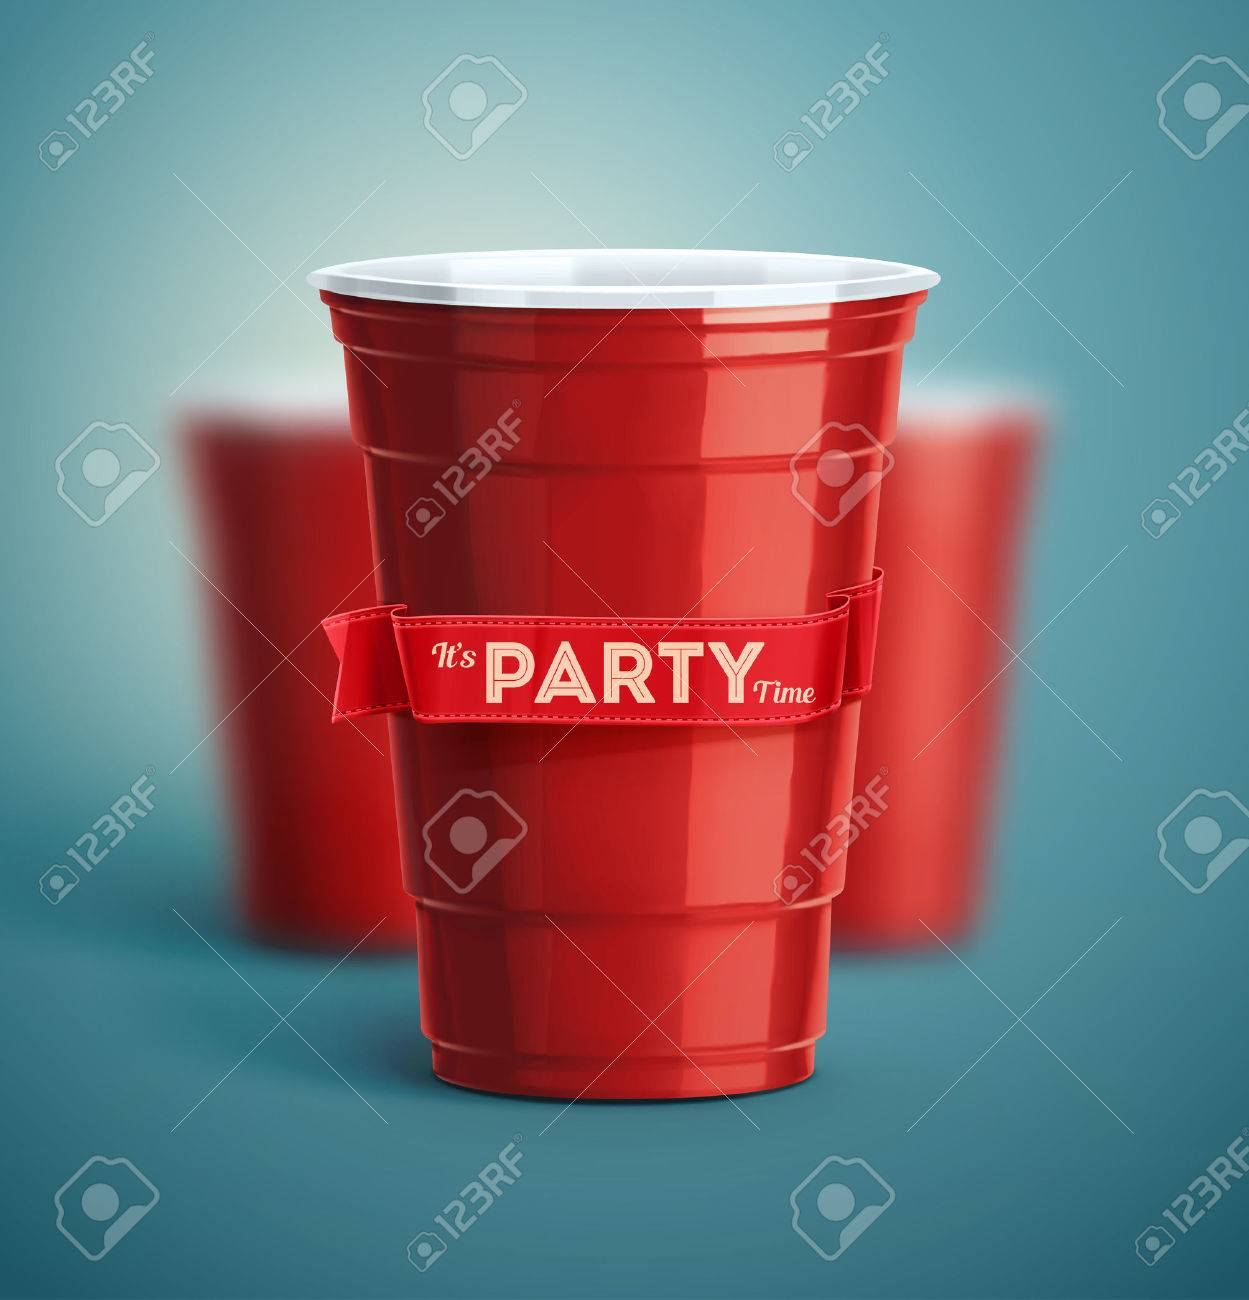 Red cups, it's party time Standard-Bild - 44258842